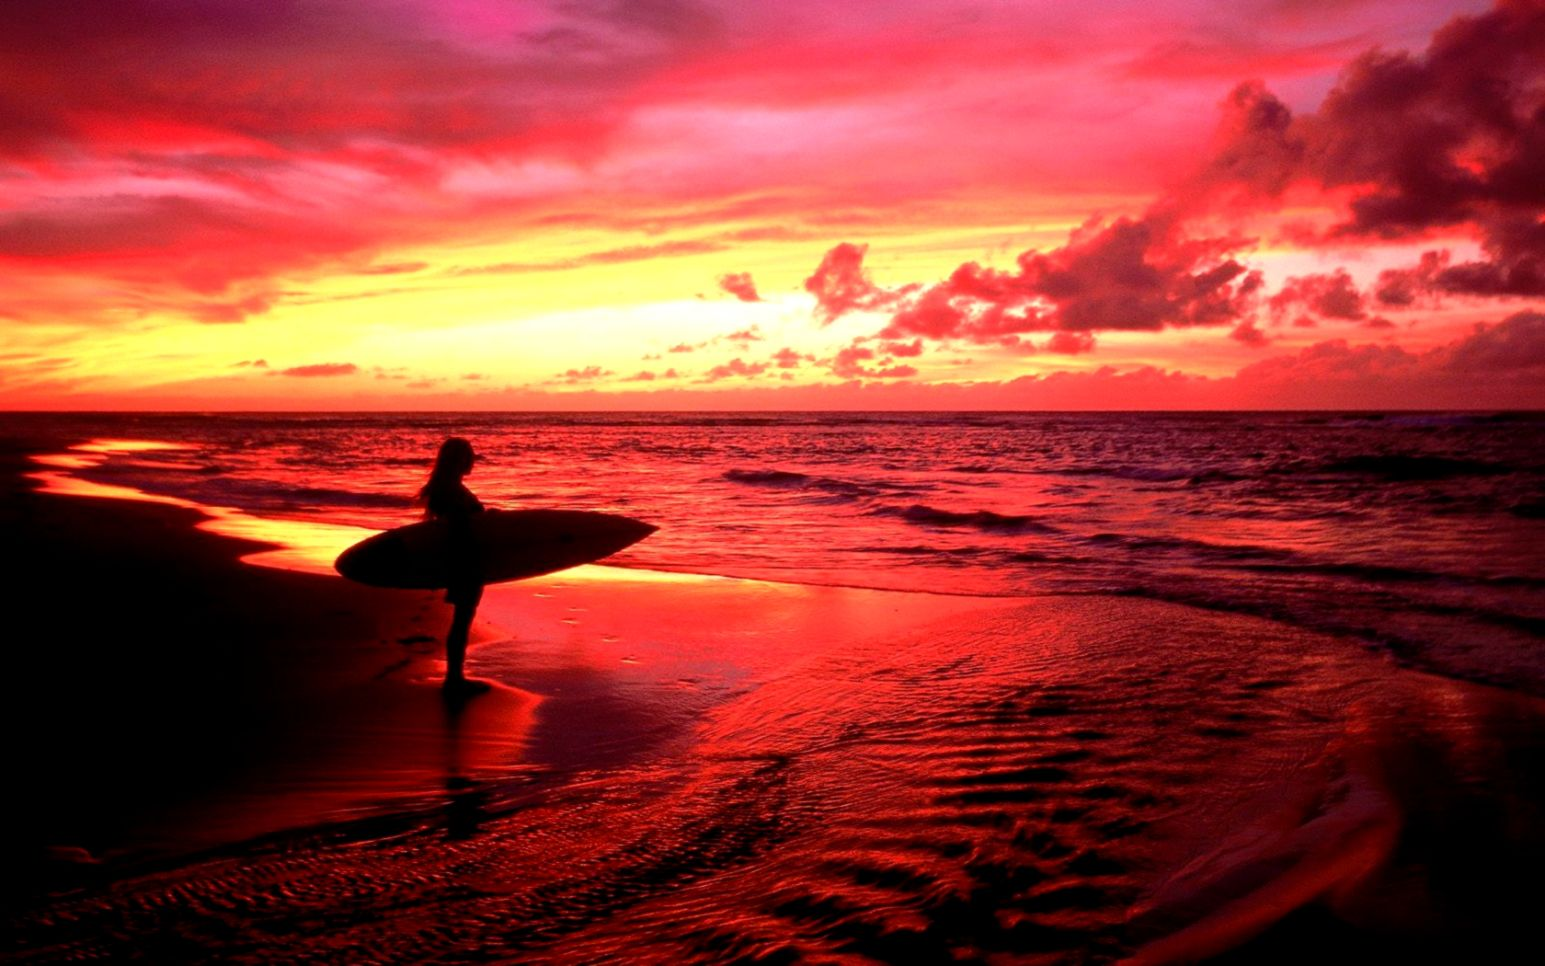 Surfing Sunset Hd Wallpapers Wallpapers Engine